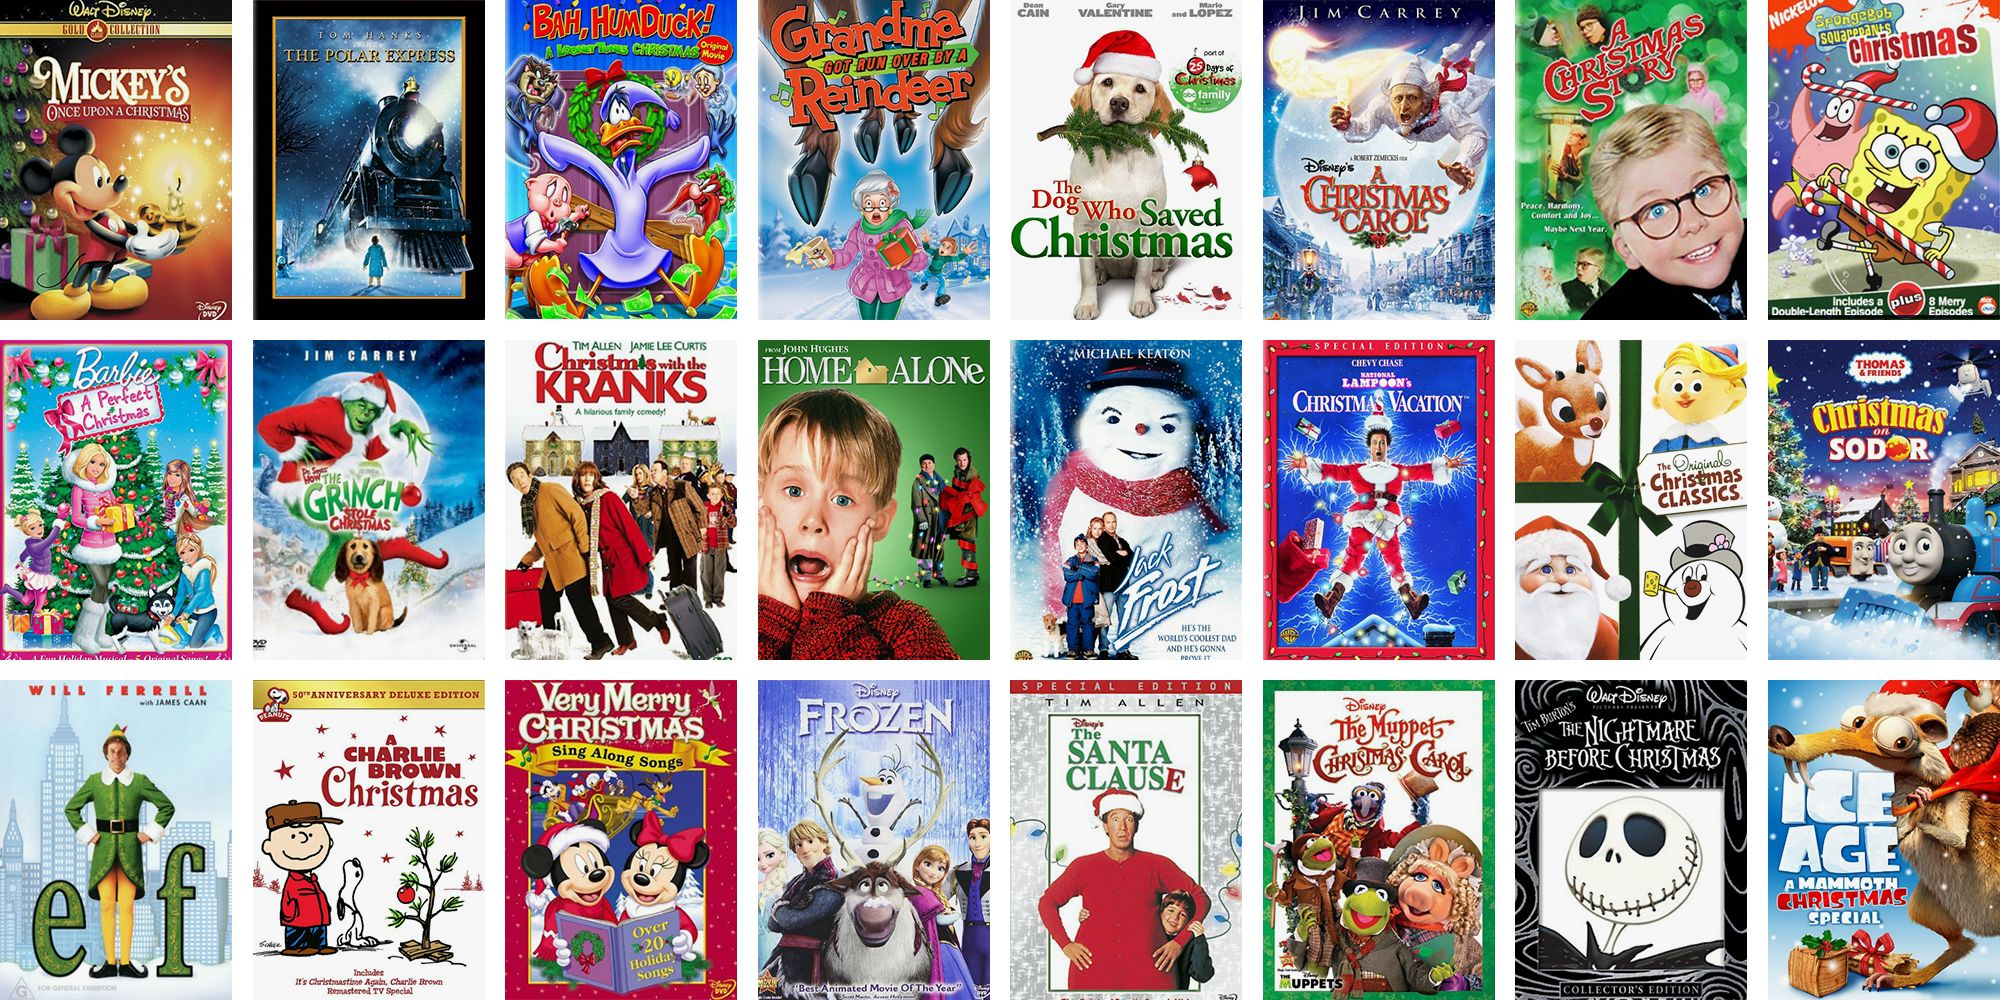 30+ Best Christmas Movies for Kids - New & Classic Kids Christmas Movies